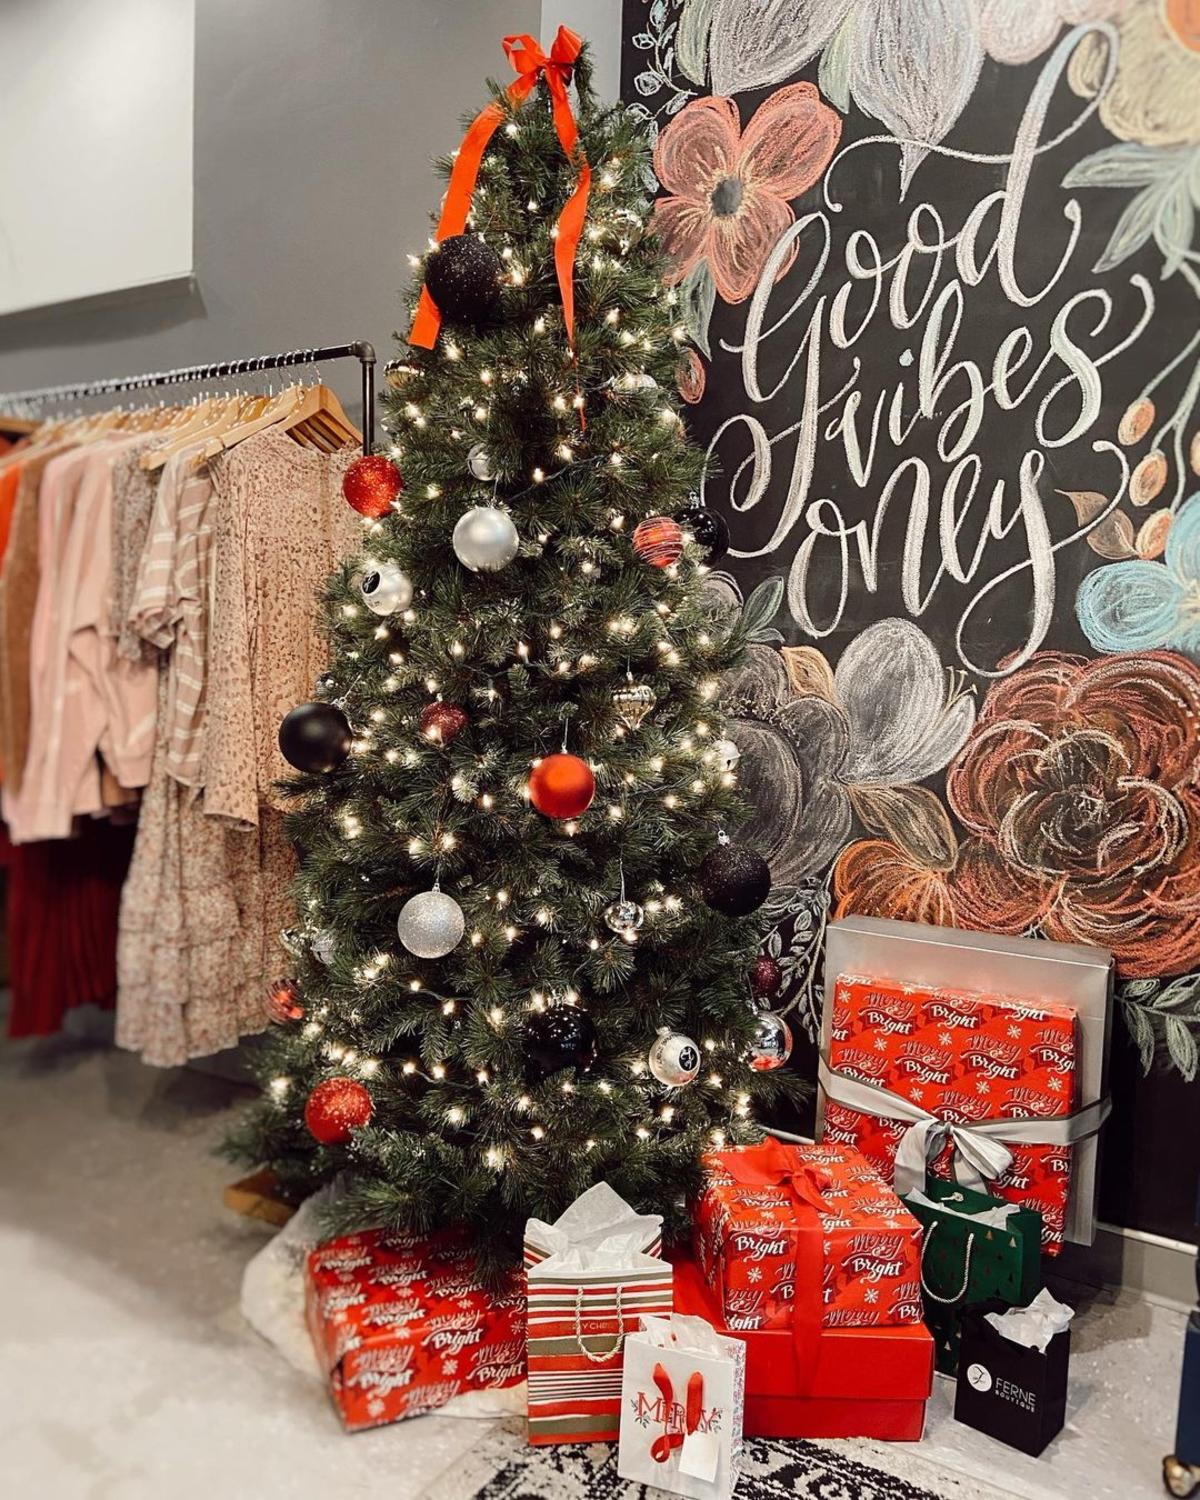 Christmas tree, presents and holiday decorations at Ferne Boutique in Bay City